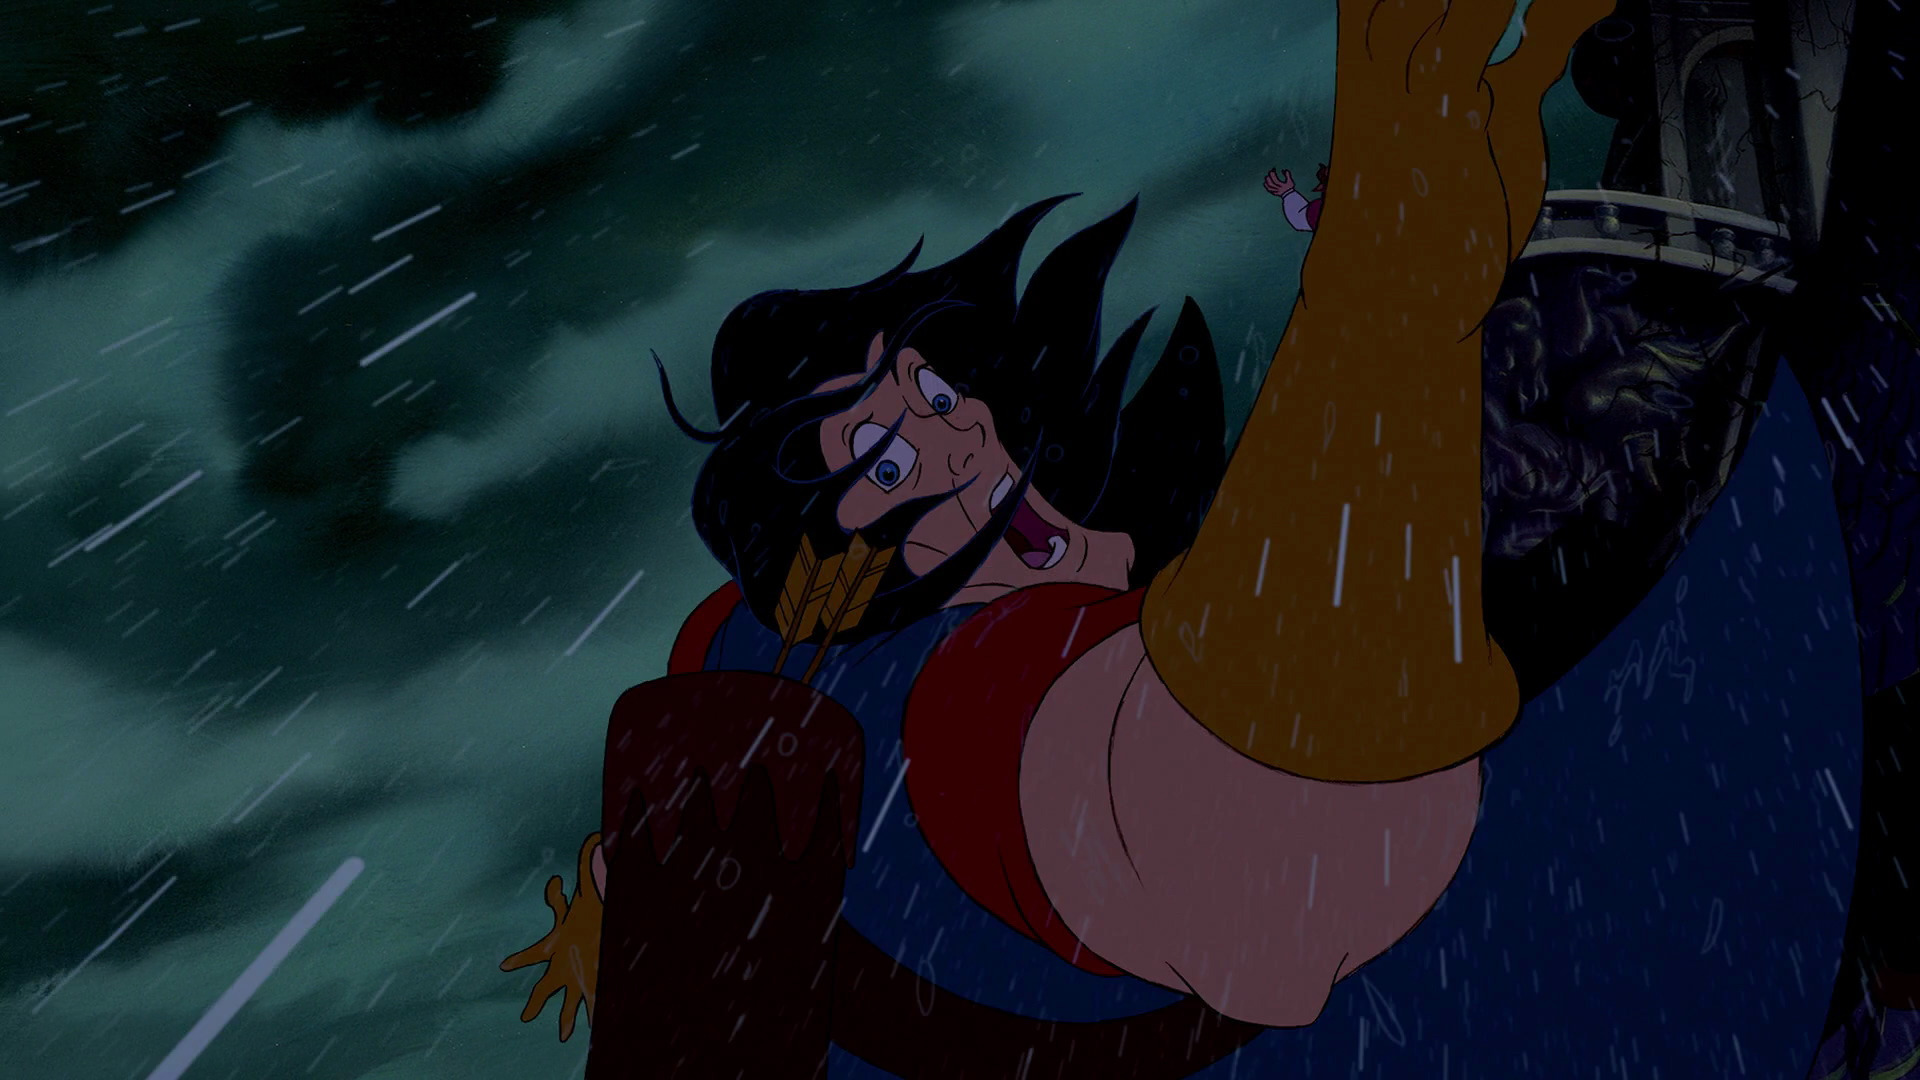 Image Gaston S Death Jpg Disney Wiki Fandom Powered